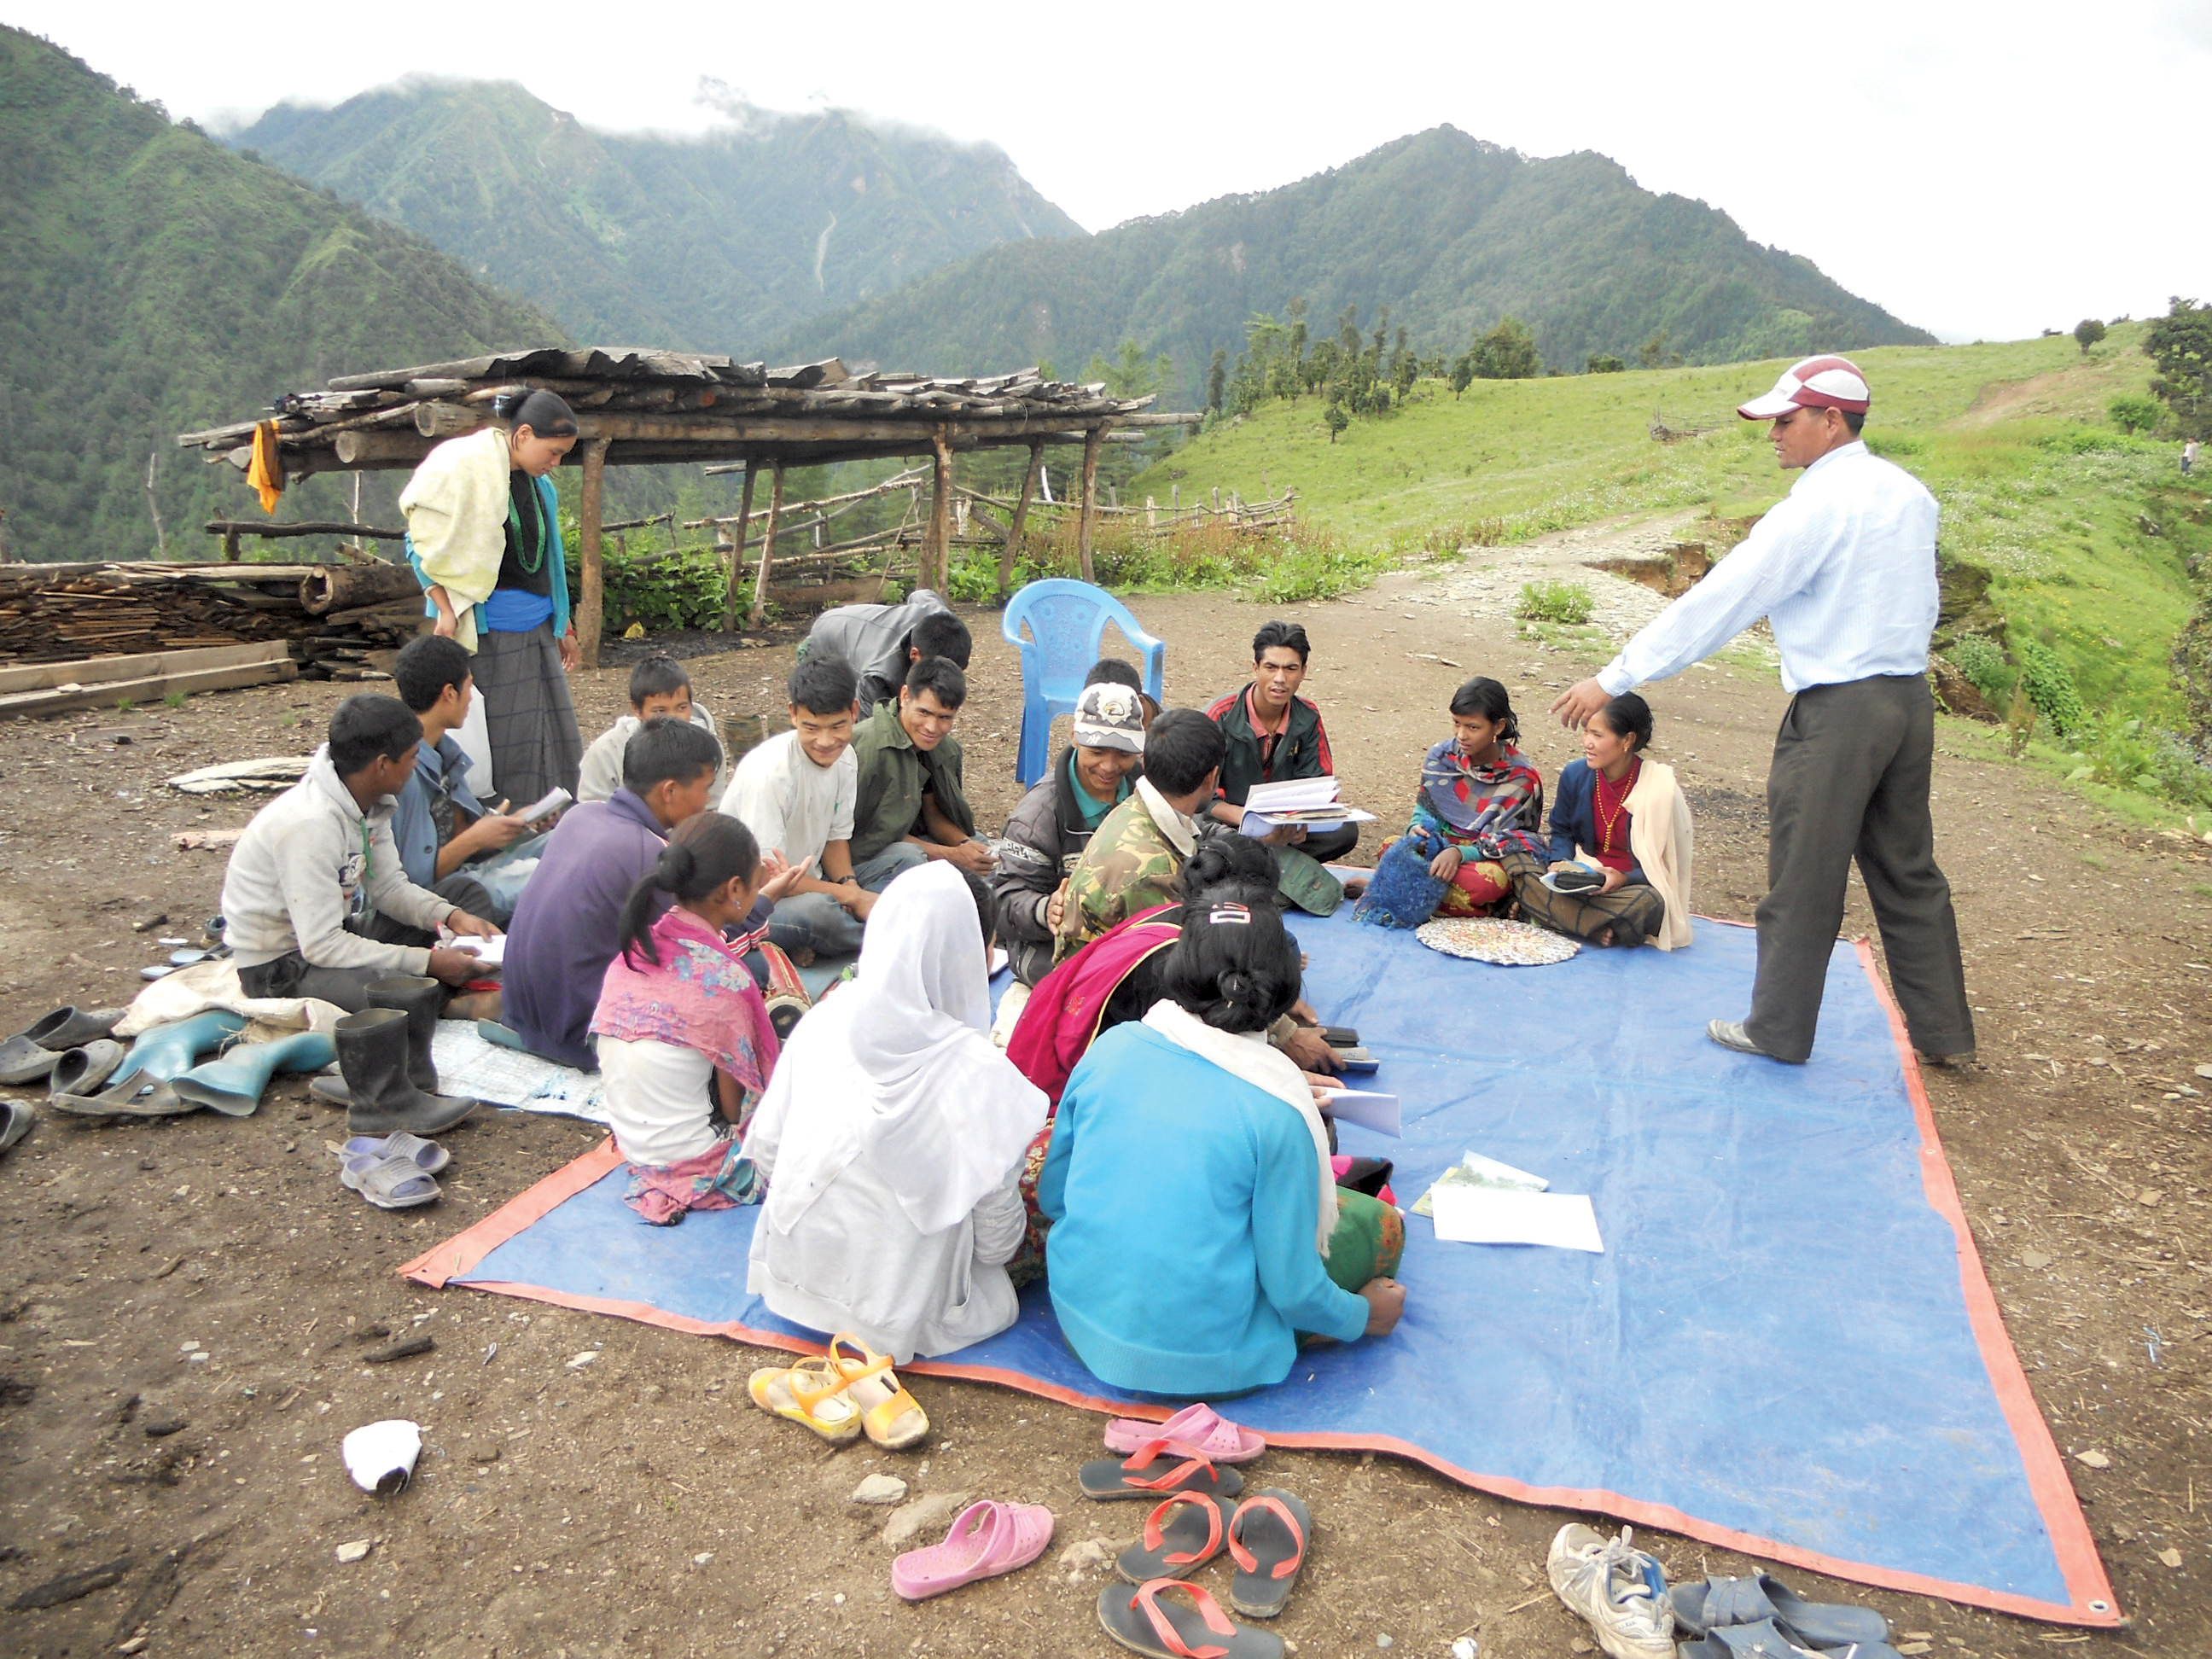 Minority Christians in Nepal growing in unity through persecution